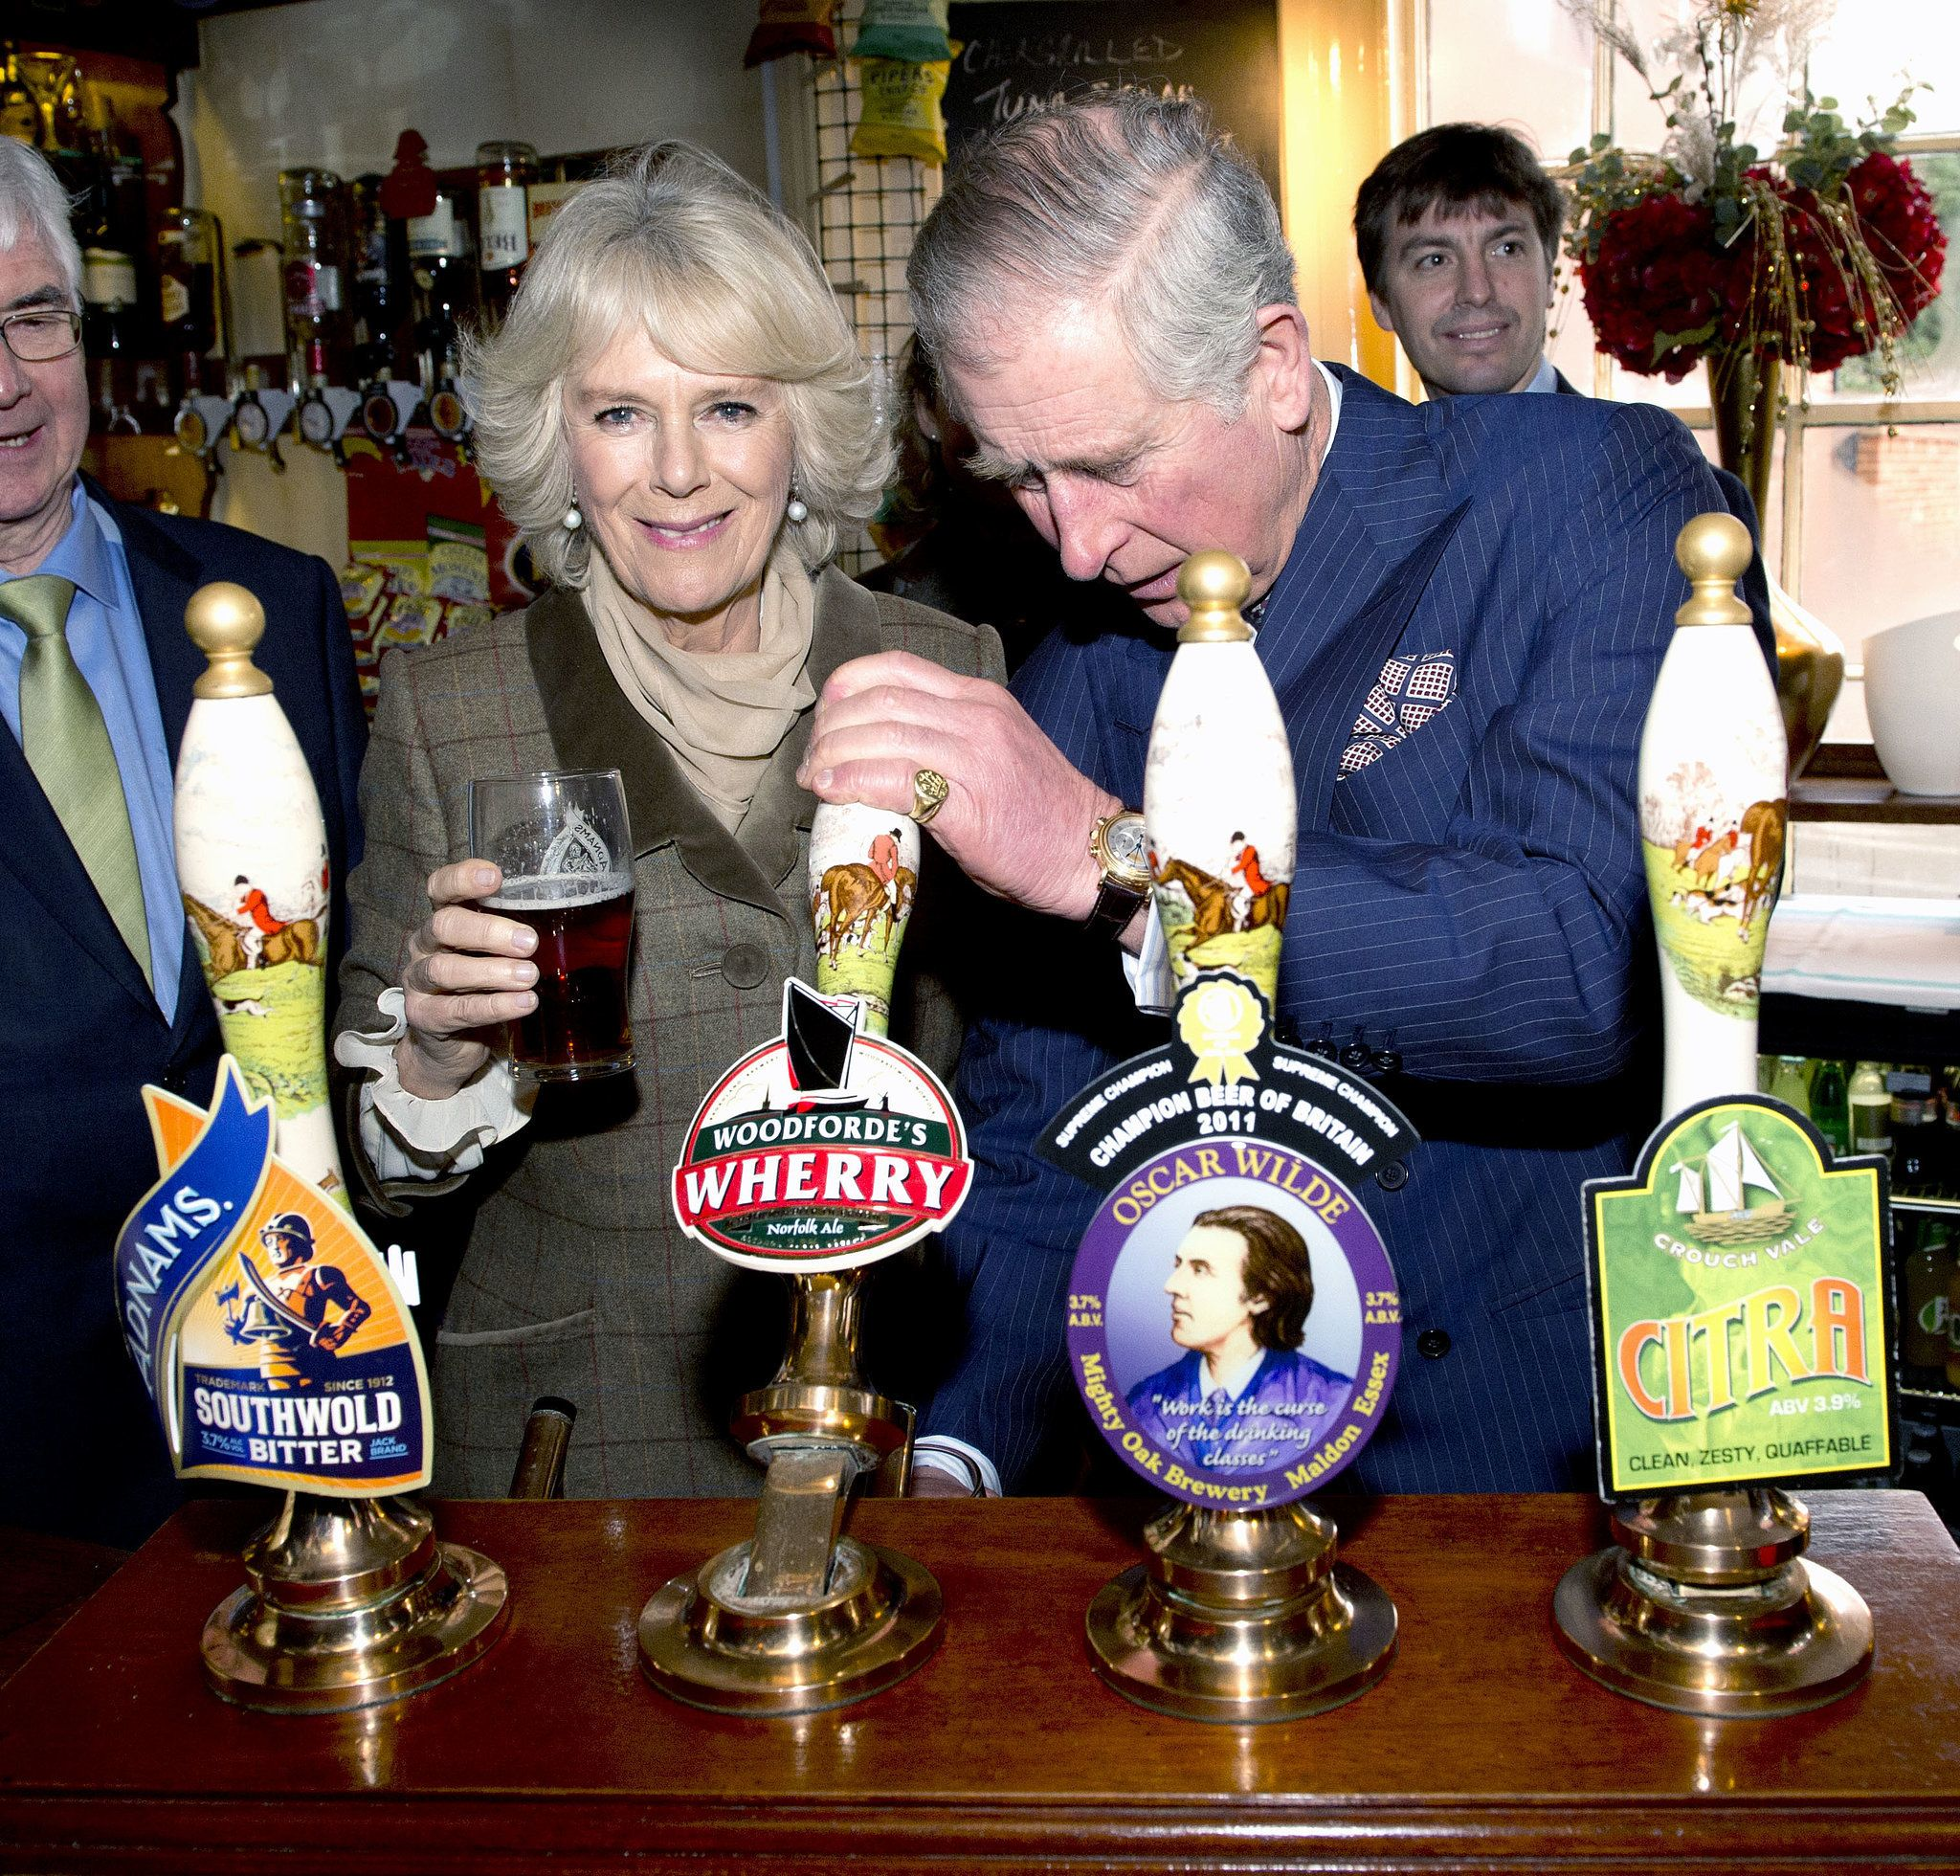 Camilla, Duchess of Cornwall, and Prince Charles enjoyed some beer while visiting The Bell Pub in Purleigh, England.